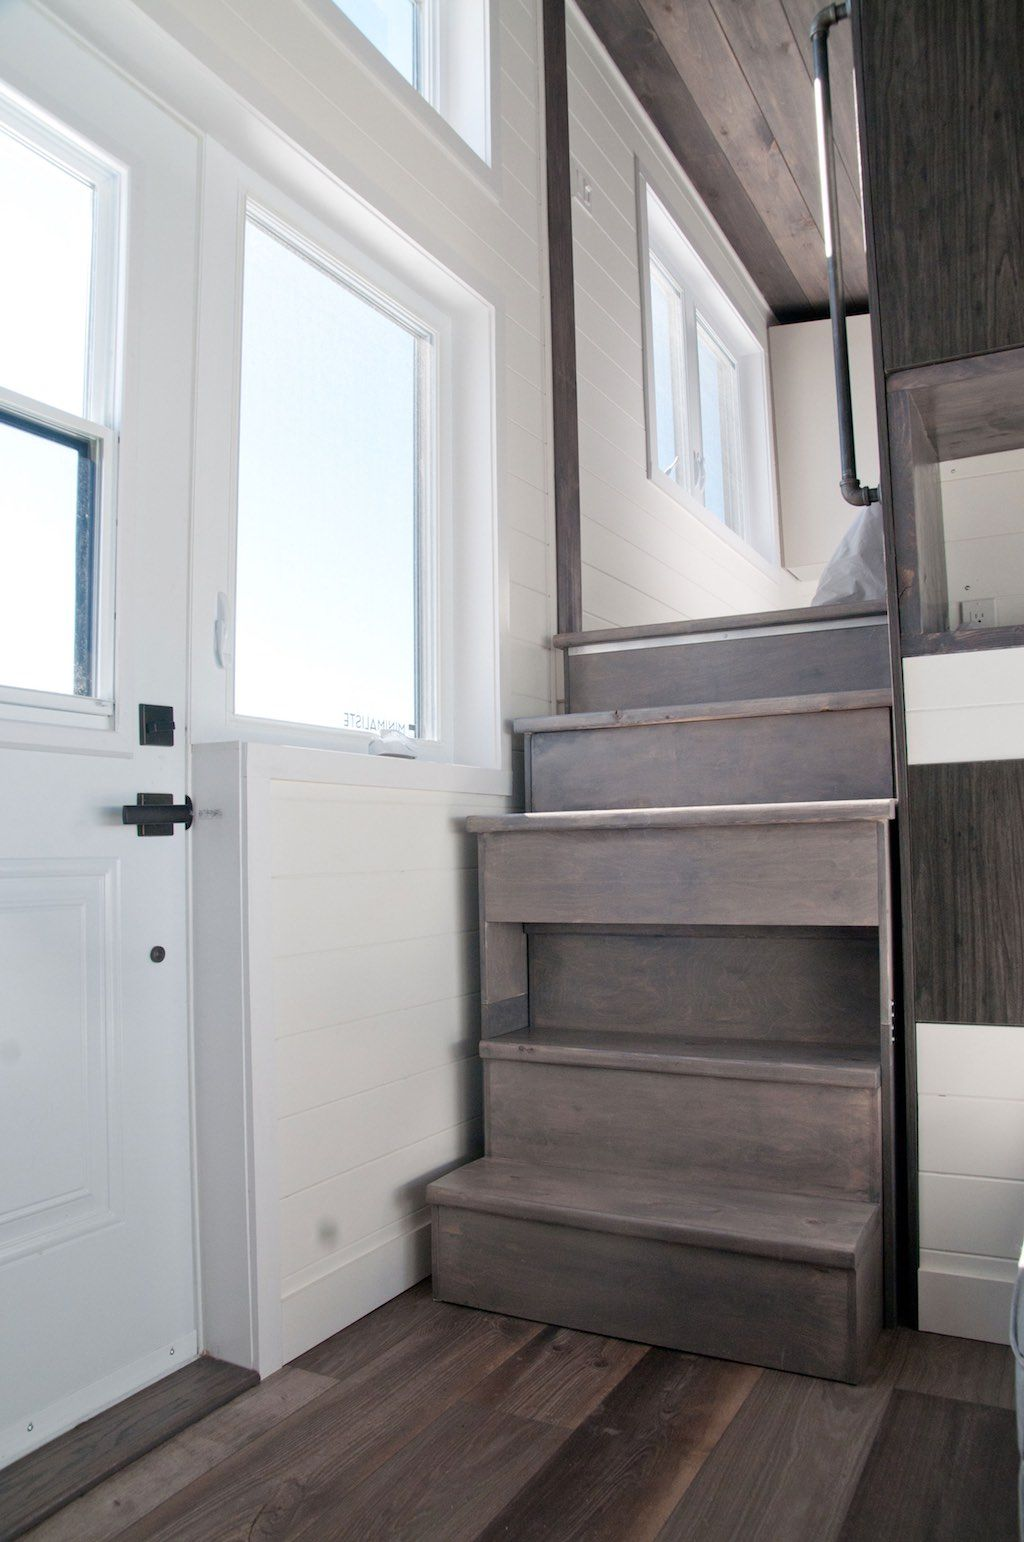 Tiny house with private \'bedroom\' offers minimalist chic | Tiny ...